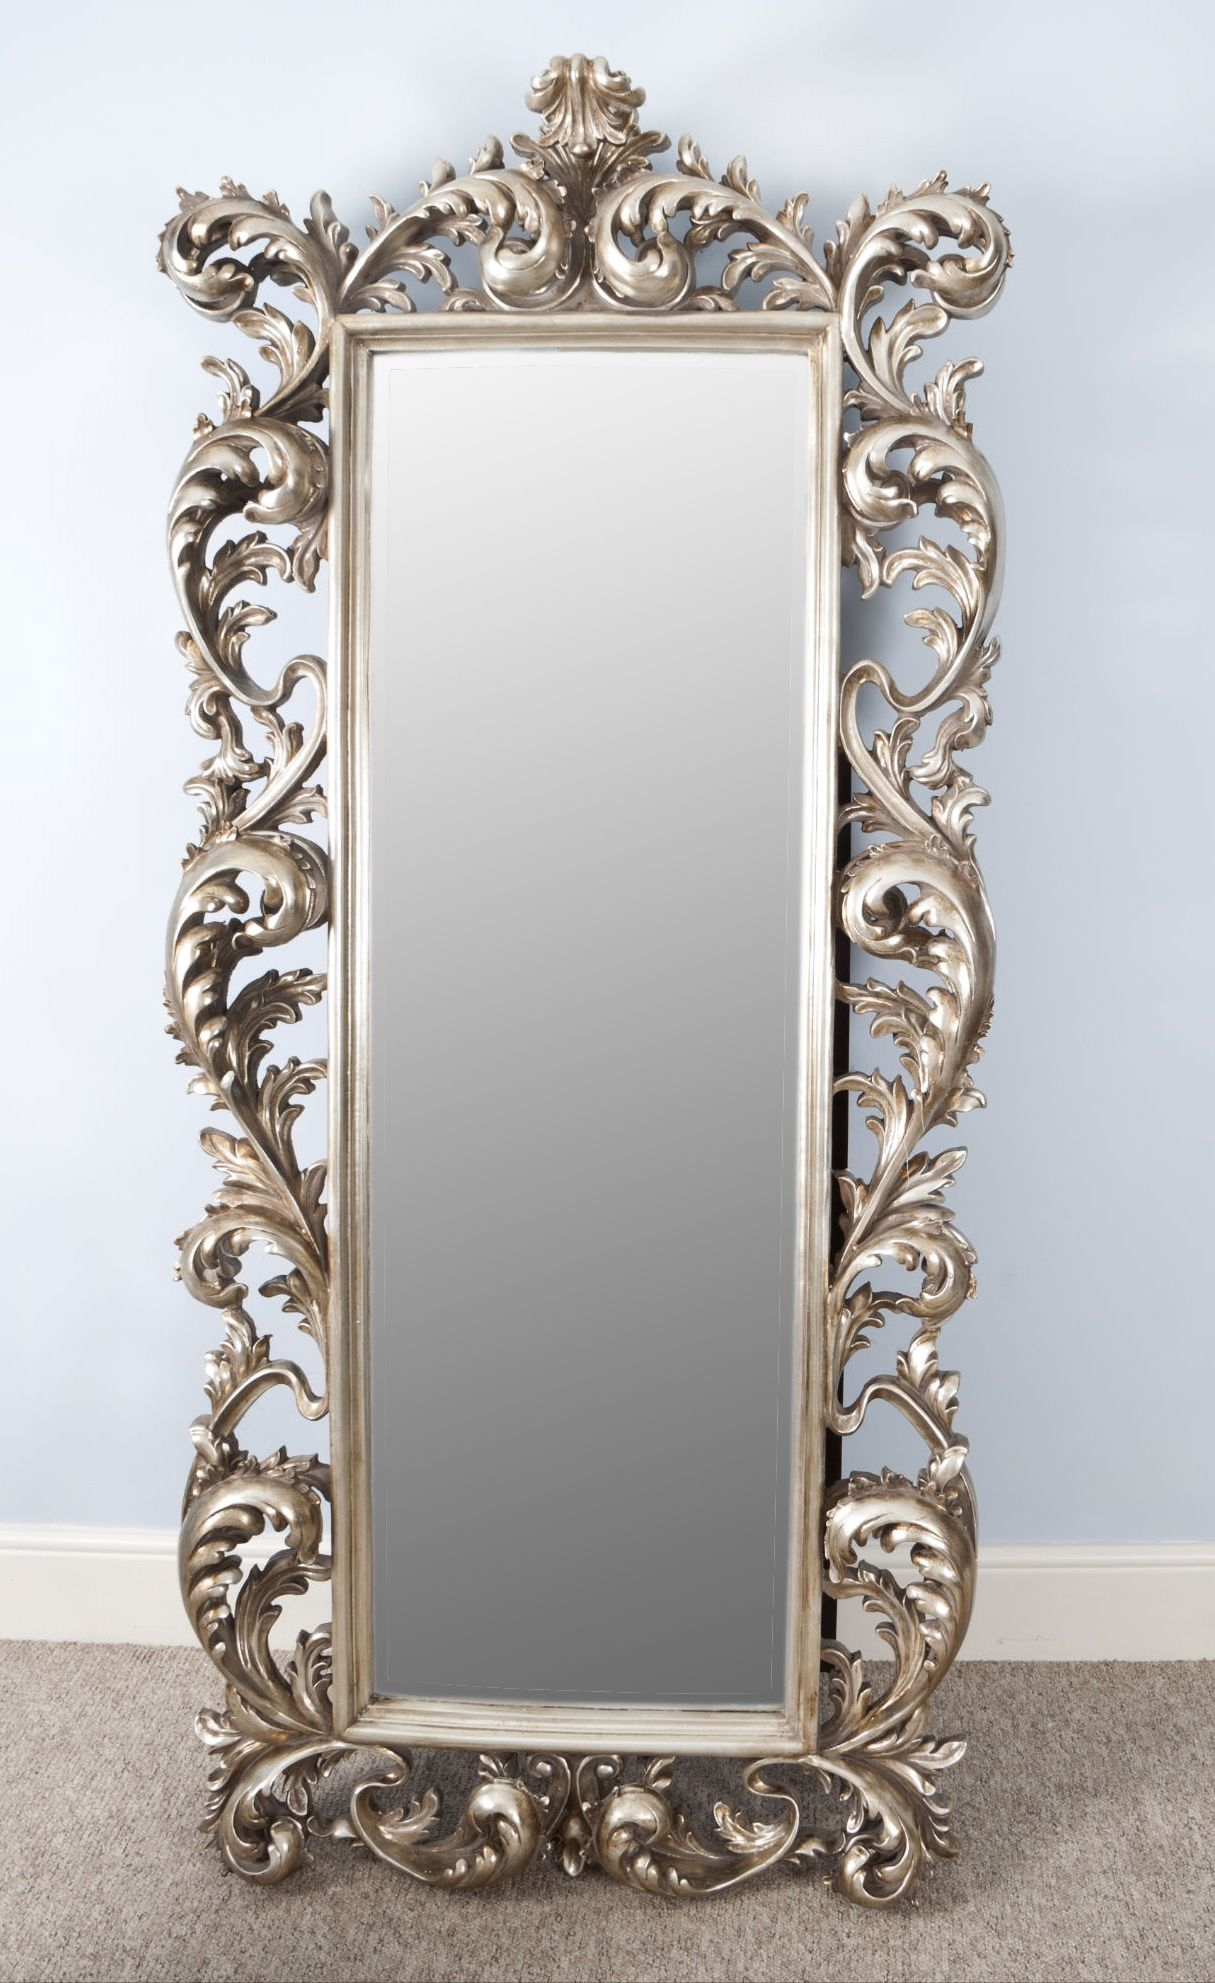 Wondrous Old Oval Mirror Antique Cheval Wall Mirror Likewise Grey Pertaining To Vintage Wall Mirrors For Sale (Image 15 of 15)